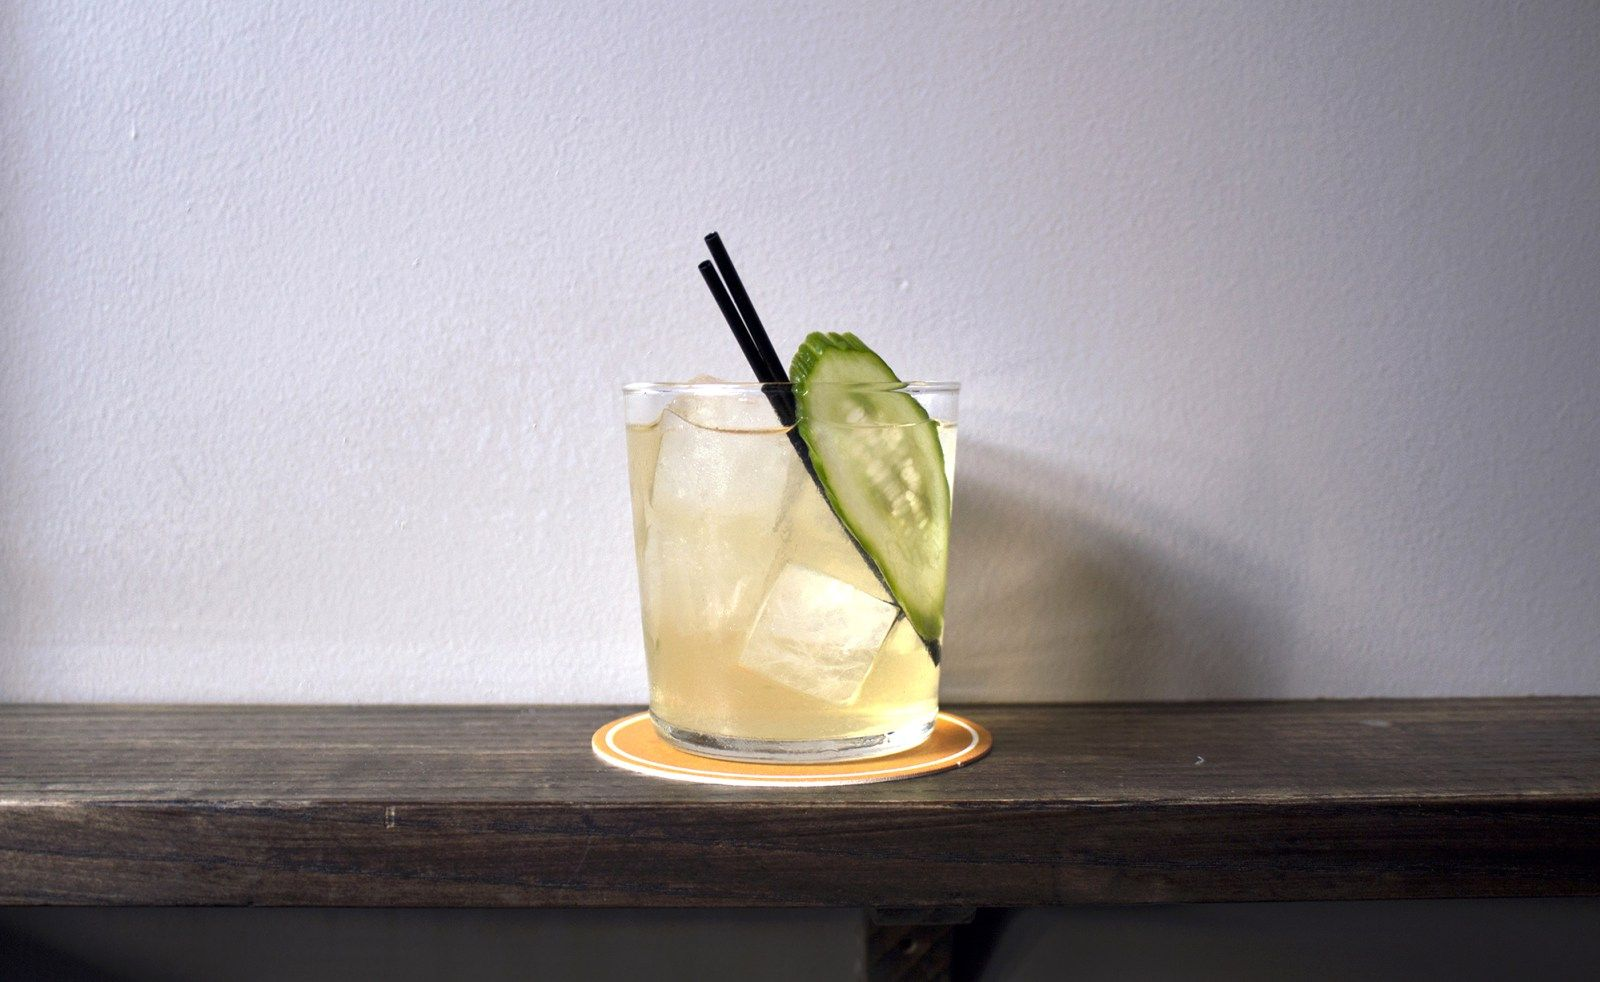 """A Mezcal Refresher With Sherry, Chamomile And Cucumber-""""We still need a name,"""" recallsLeyenda'sco-owner and head bartenderIvy Mixas she nods to fellow bartender and fellow SpeedRack alum Shannon Ponche, who"""